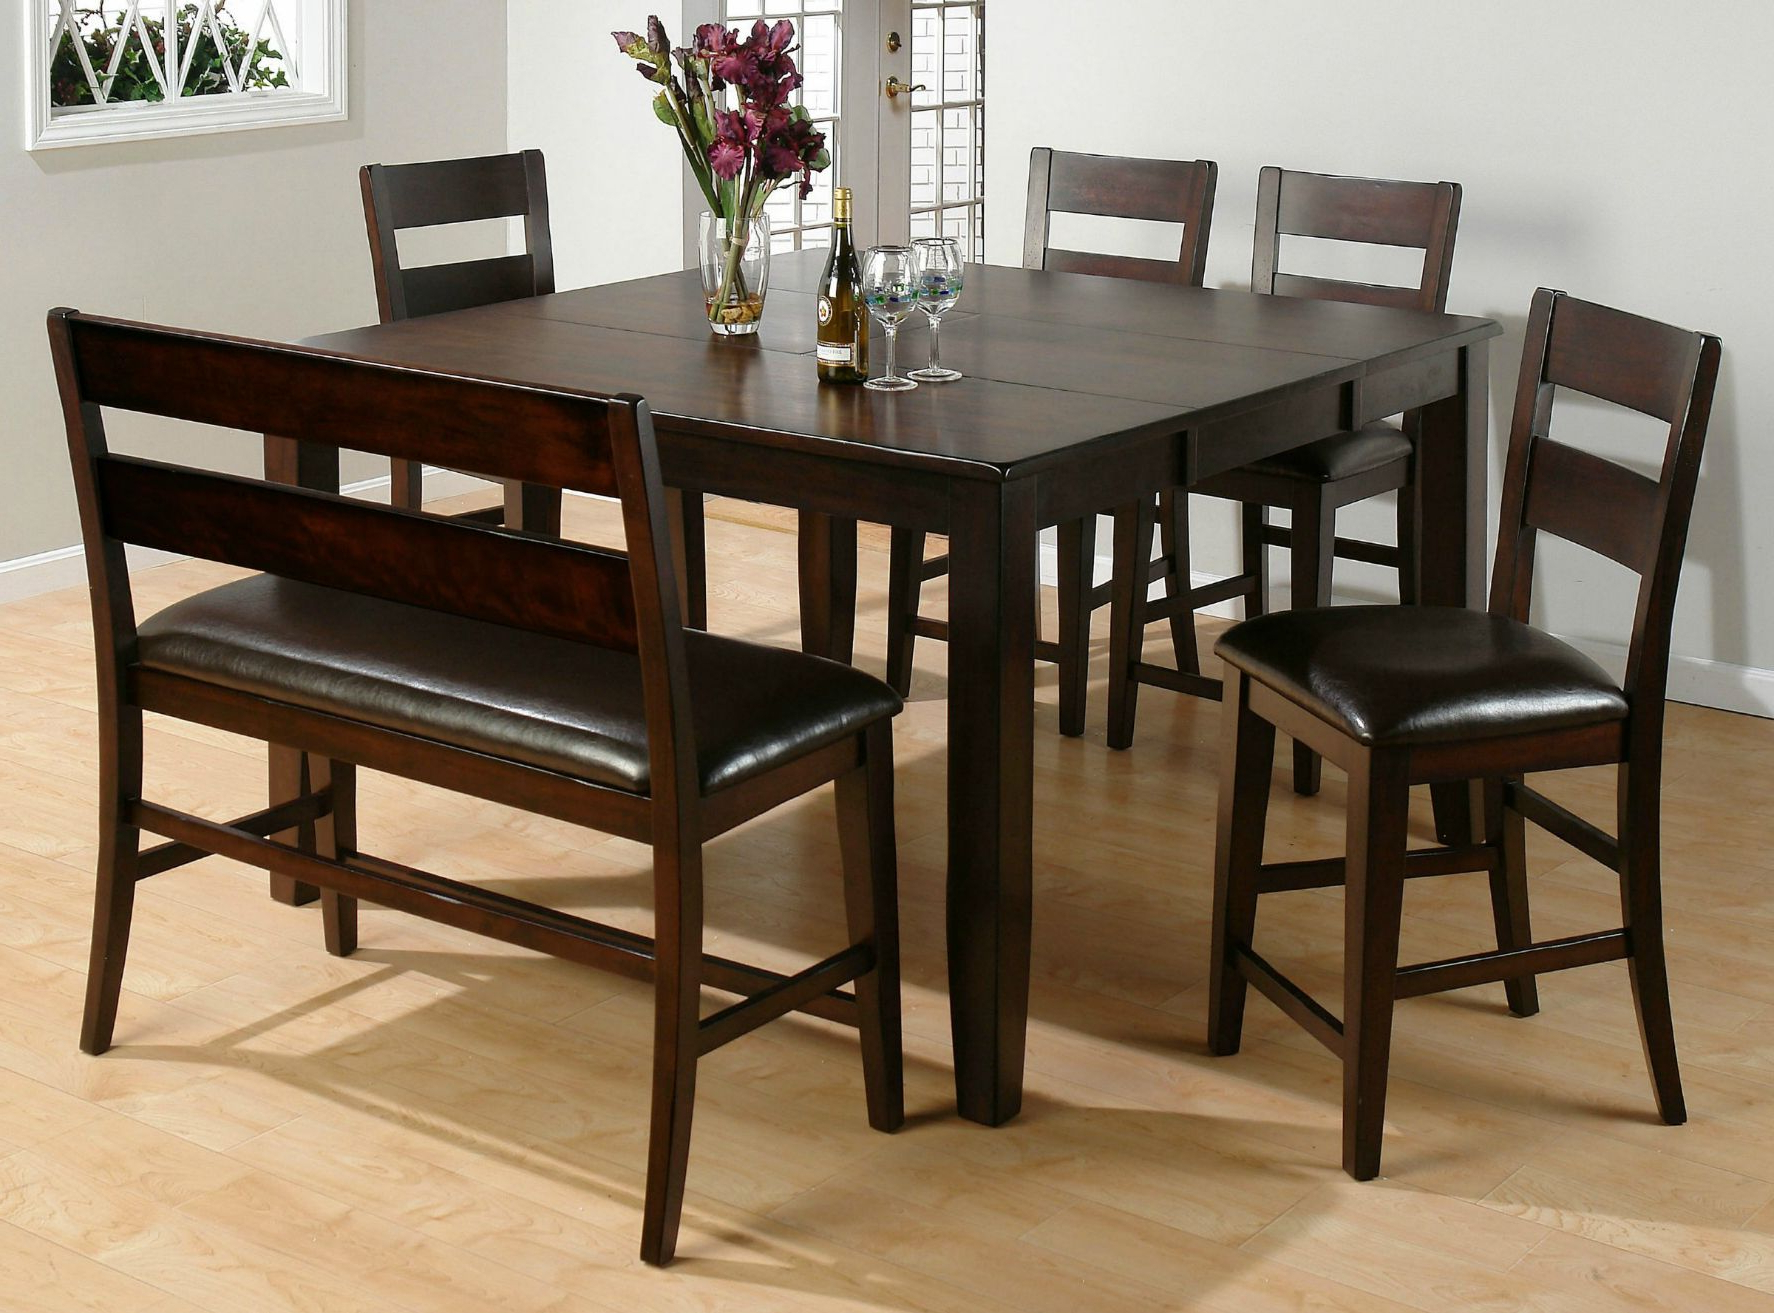 2020 26 Dining Room Sets (Big And Small) With Bench Seating (2020 Within Transitional 4 Seating Drop Leaf Casual Dining Tables (View 11 of 25)